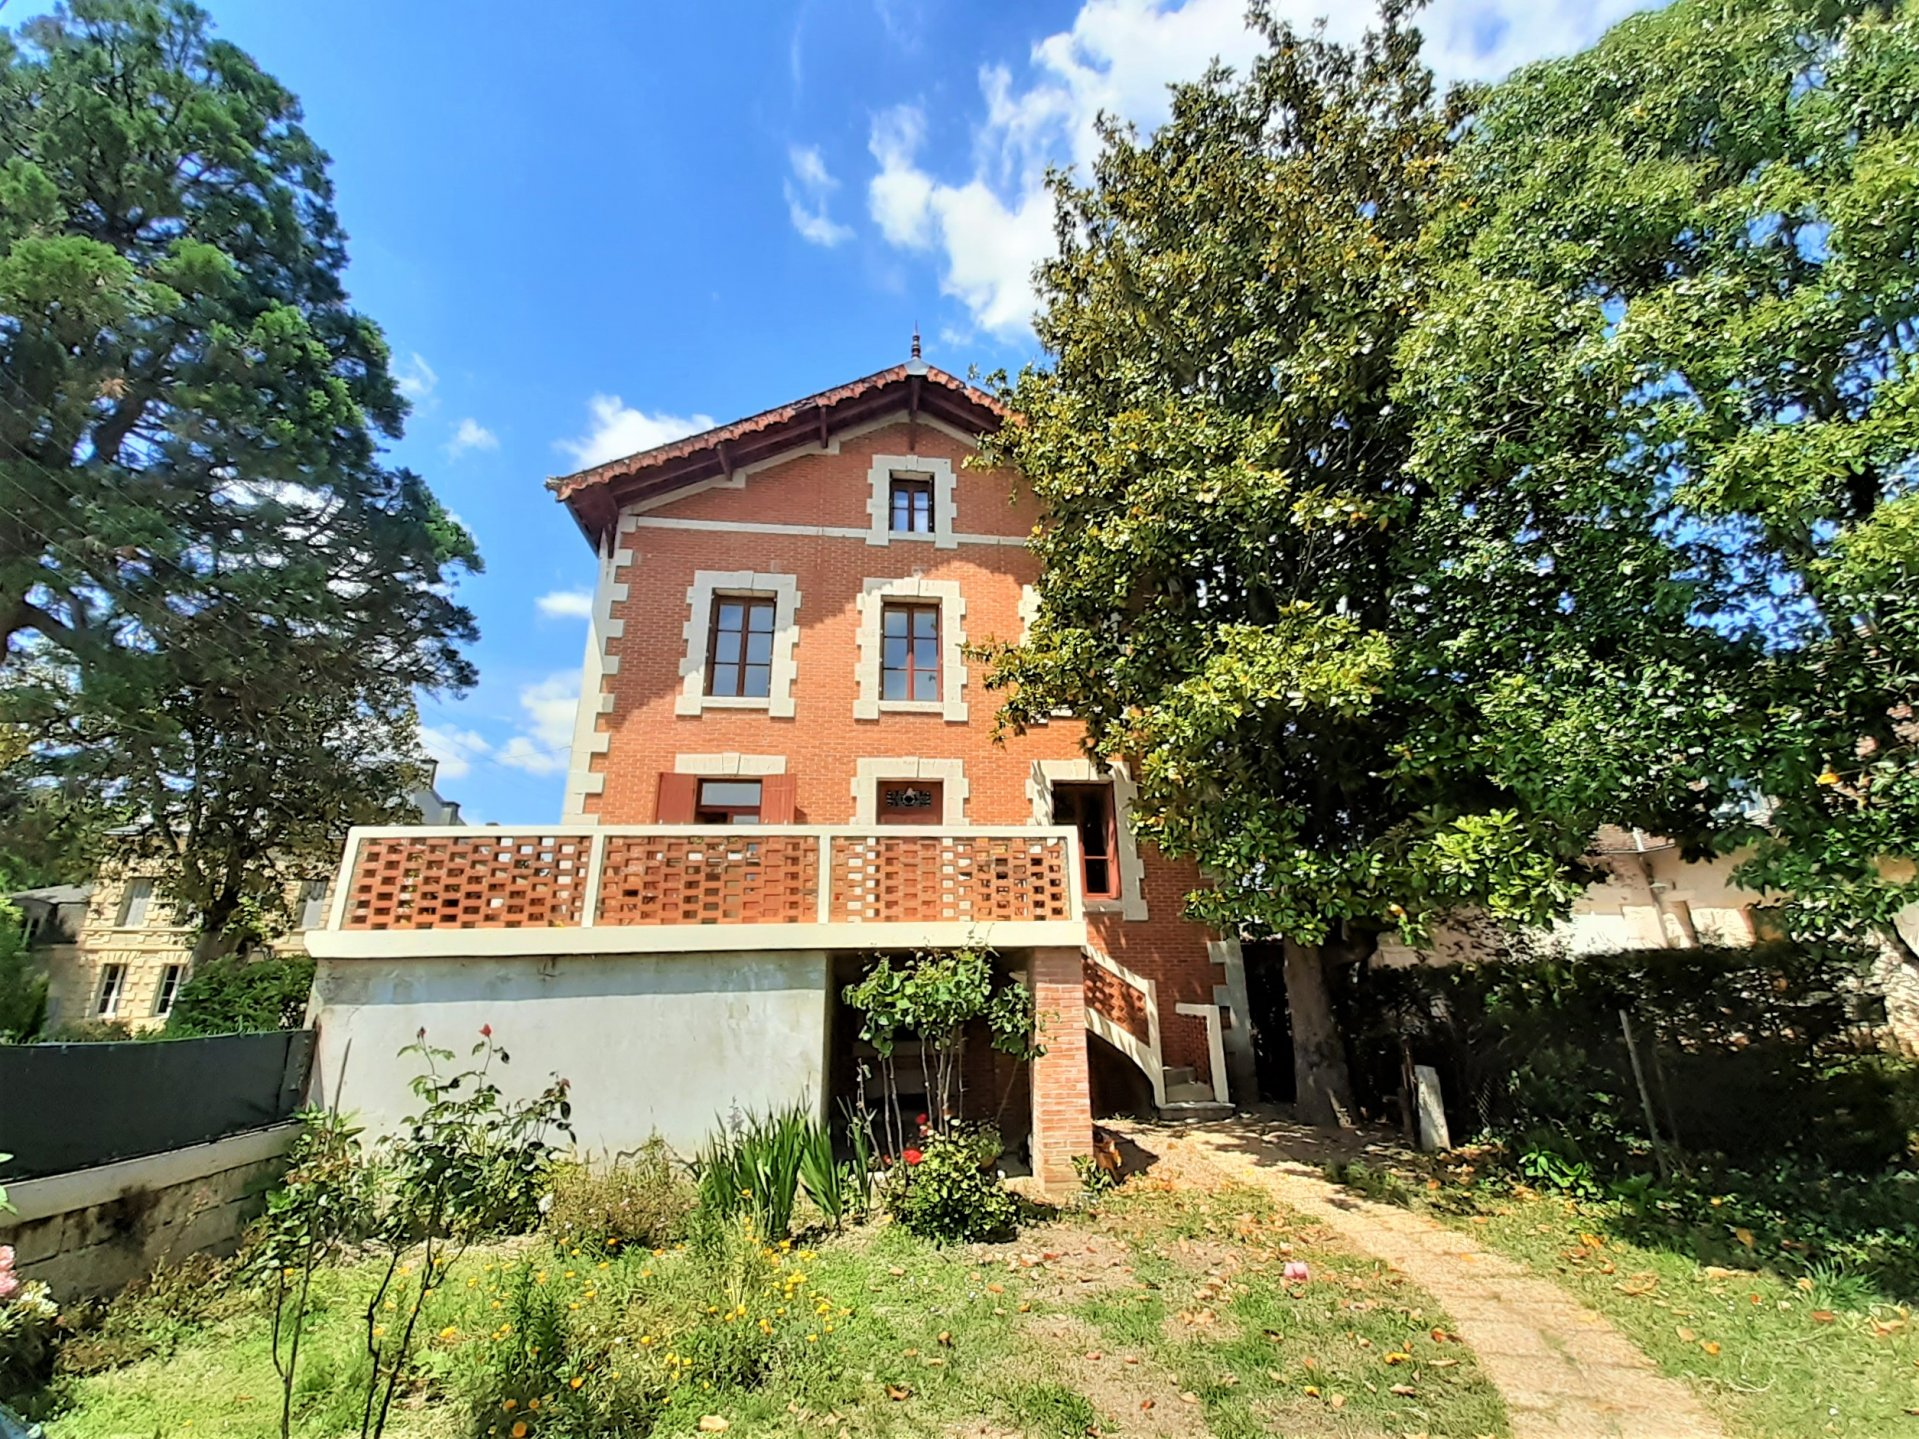 Handsome Townhouse in Eymet with commercial possibilities